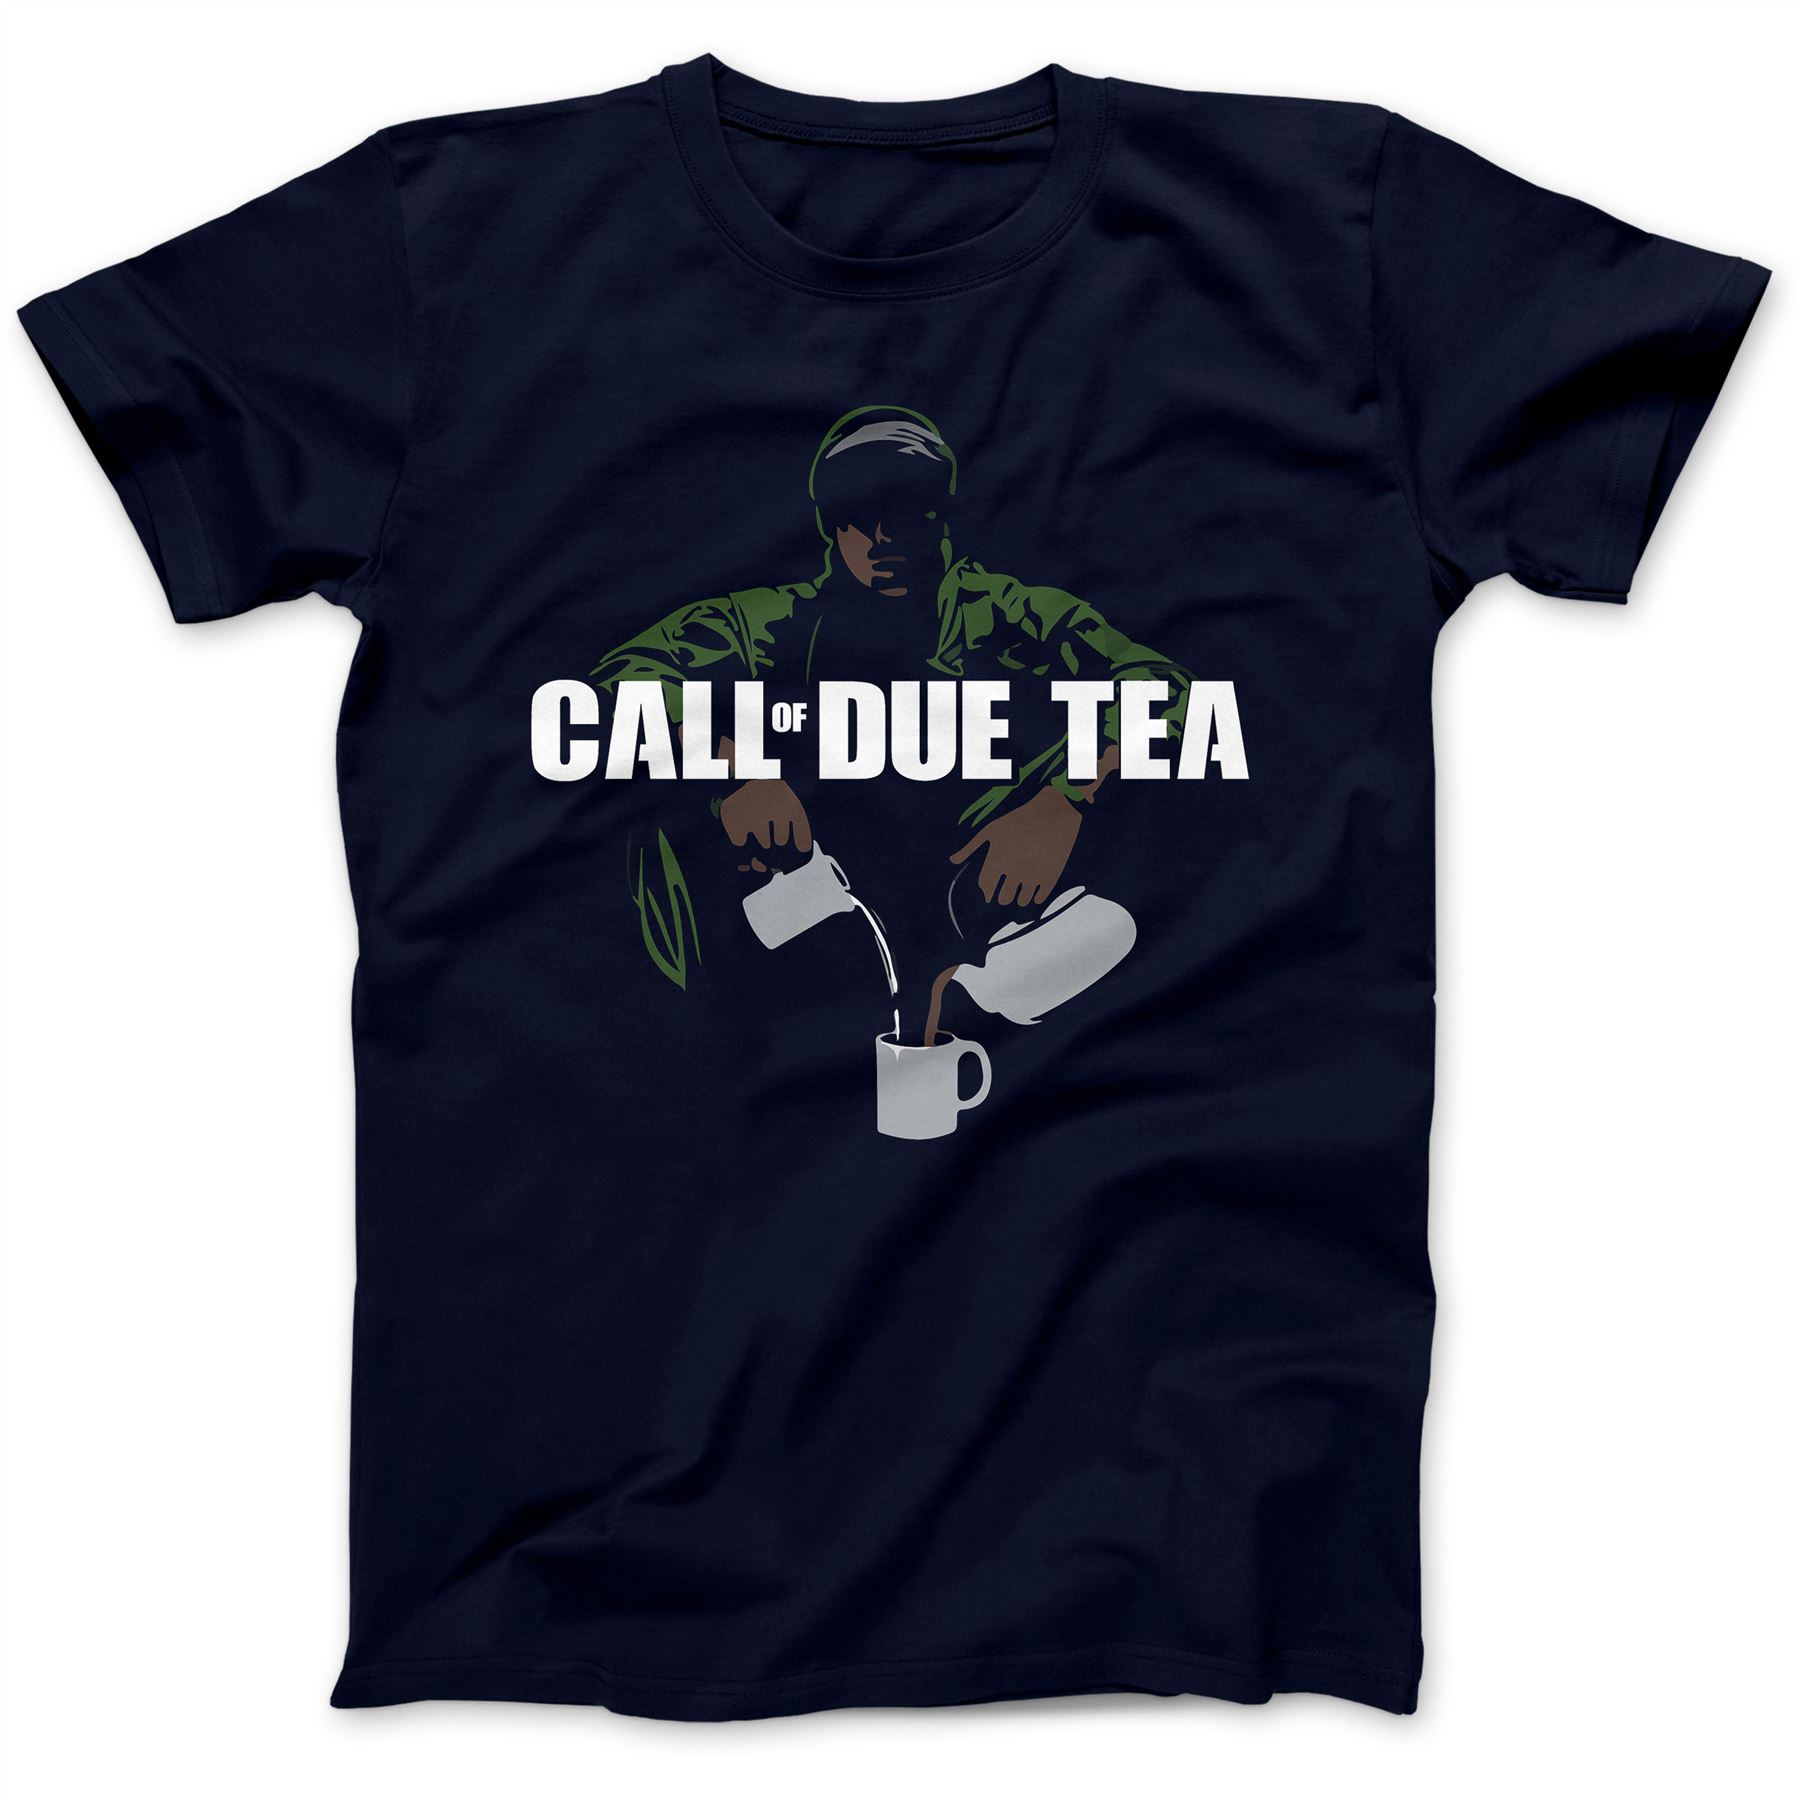 Call Of Due Tea Parody T-Shirt 100% Premium Cotton Advanced Warfare Duty